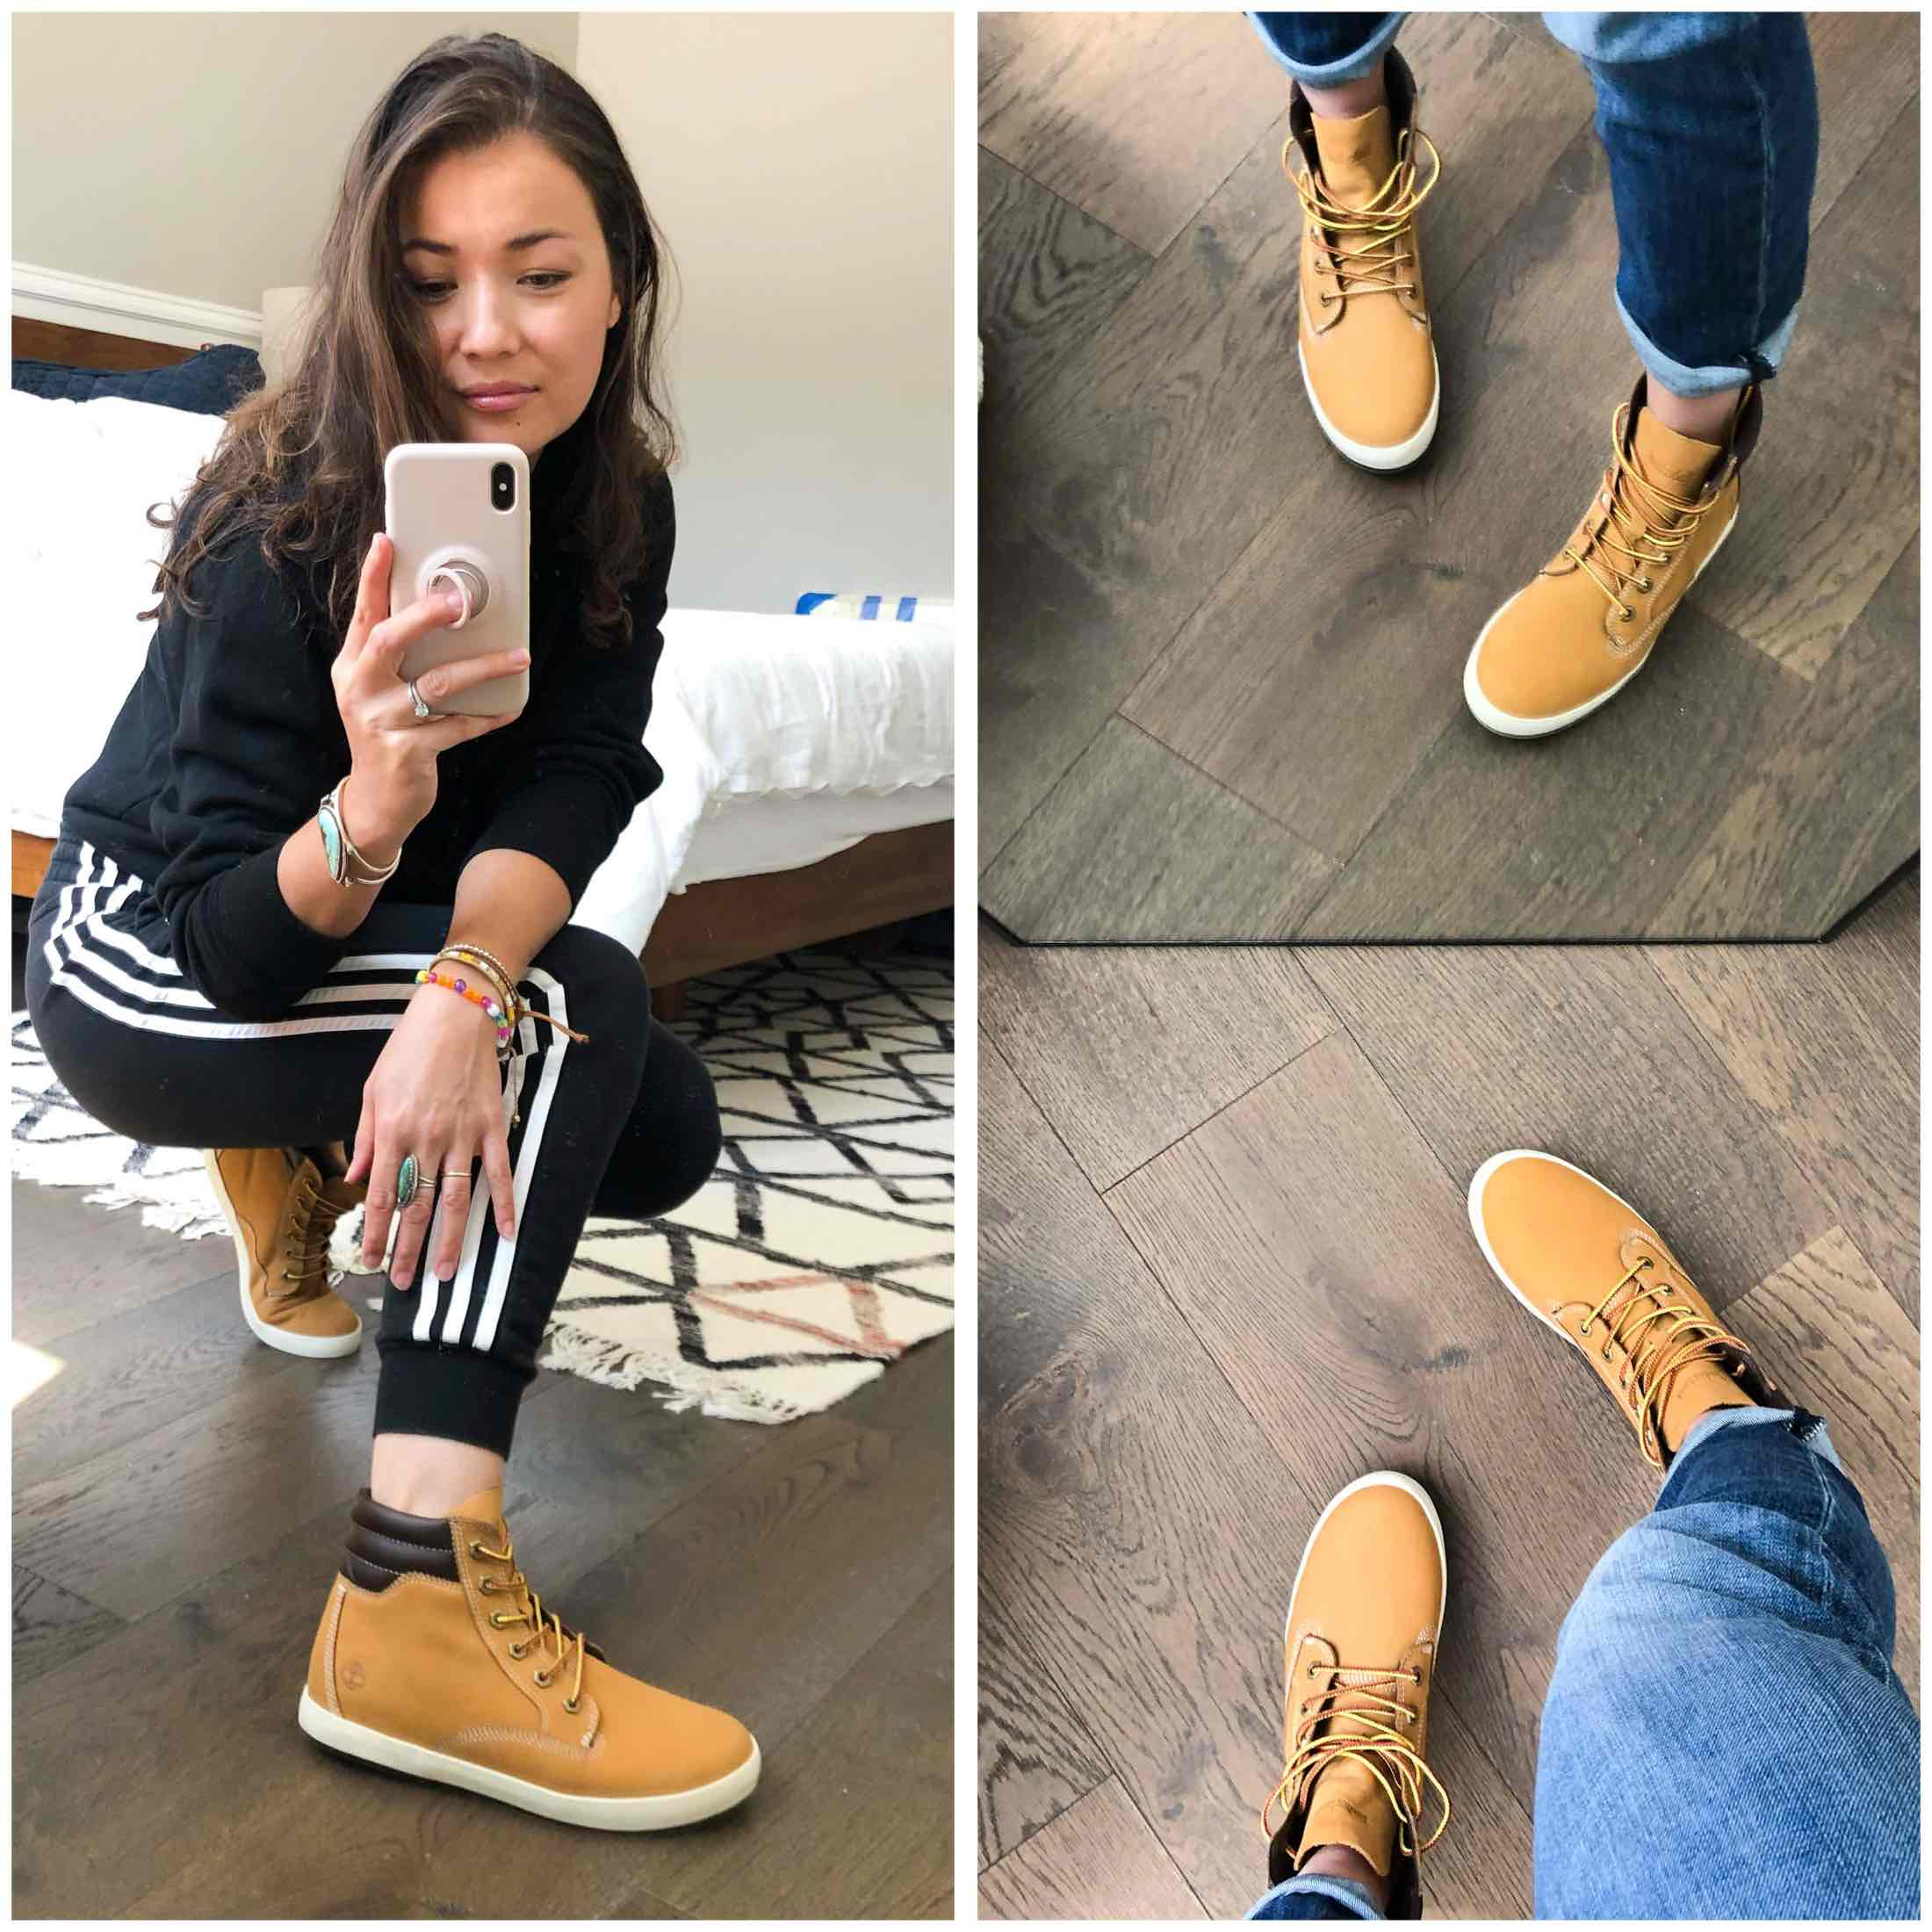 Sneaker Boots, Mules \u0026 Pointed-Toe